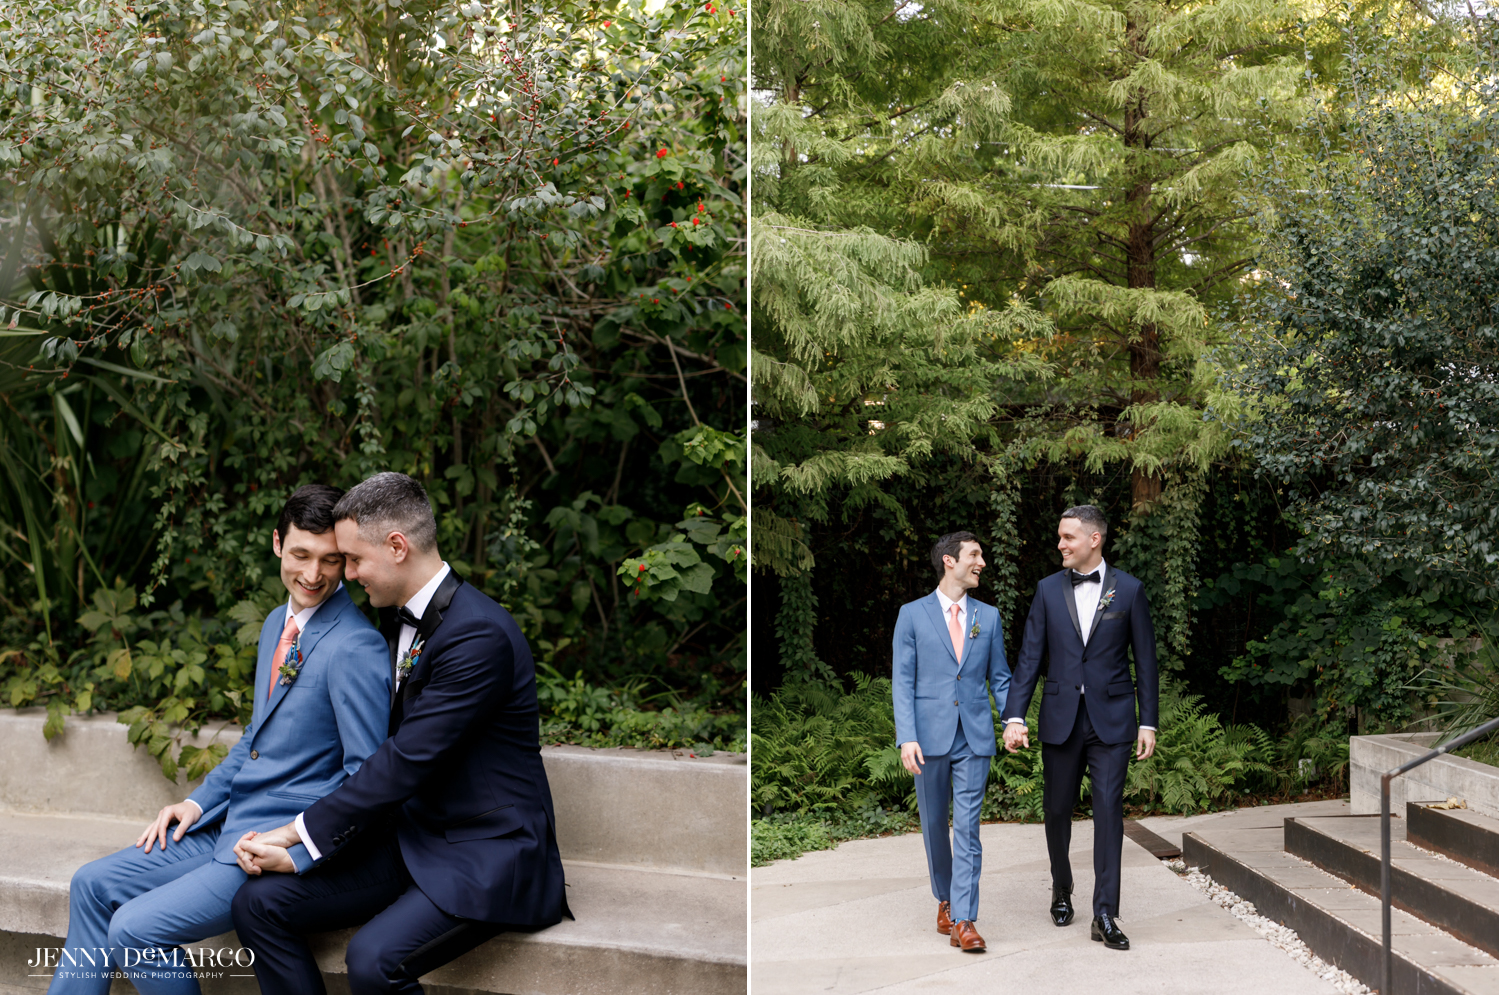 Left: Grooms sitting on bench; Right: Grooms holding hands and walking